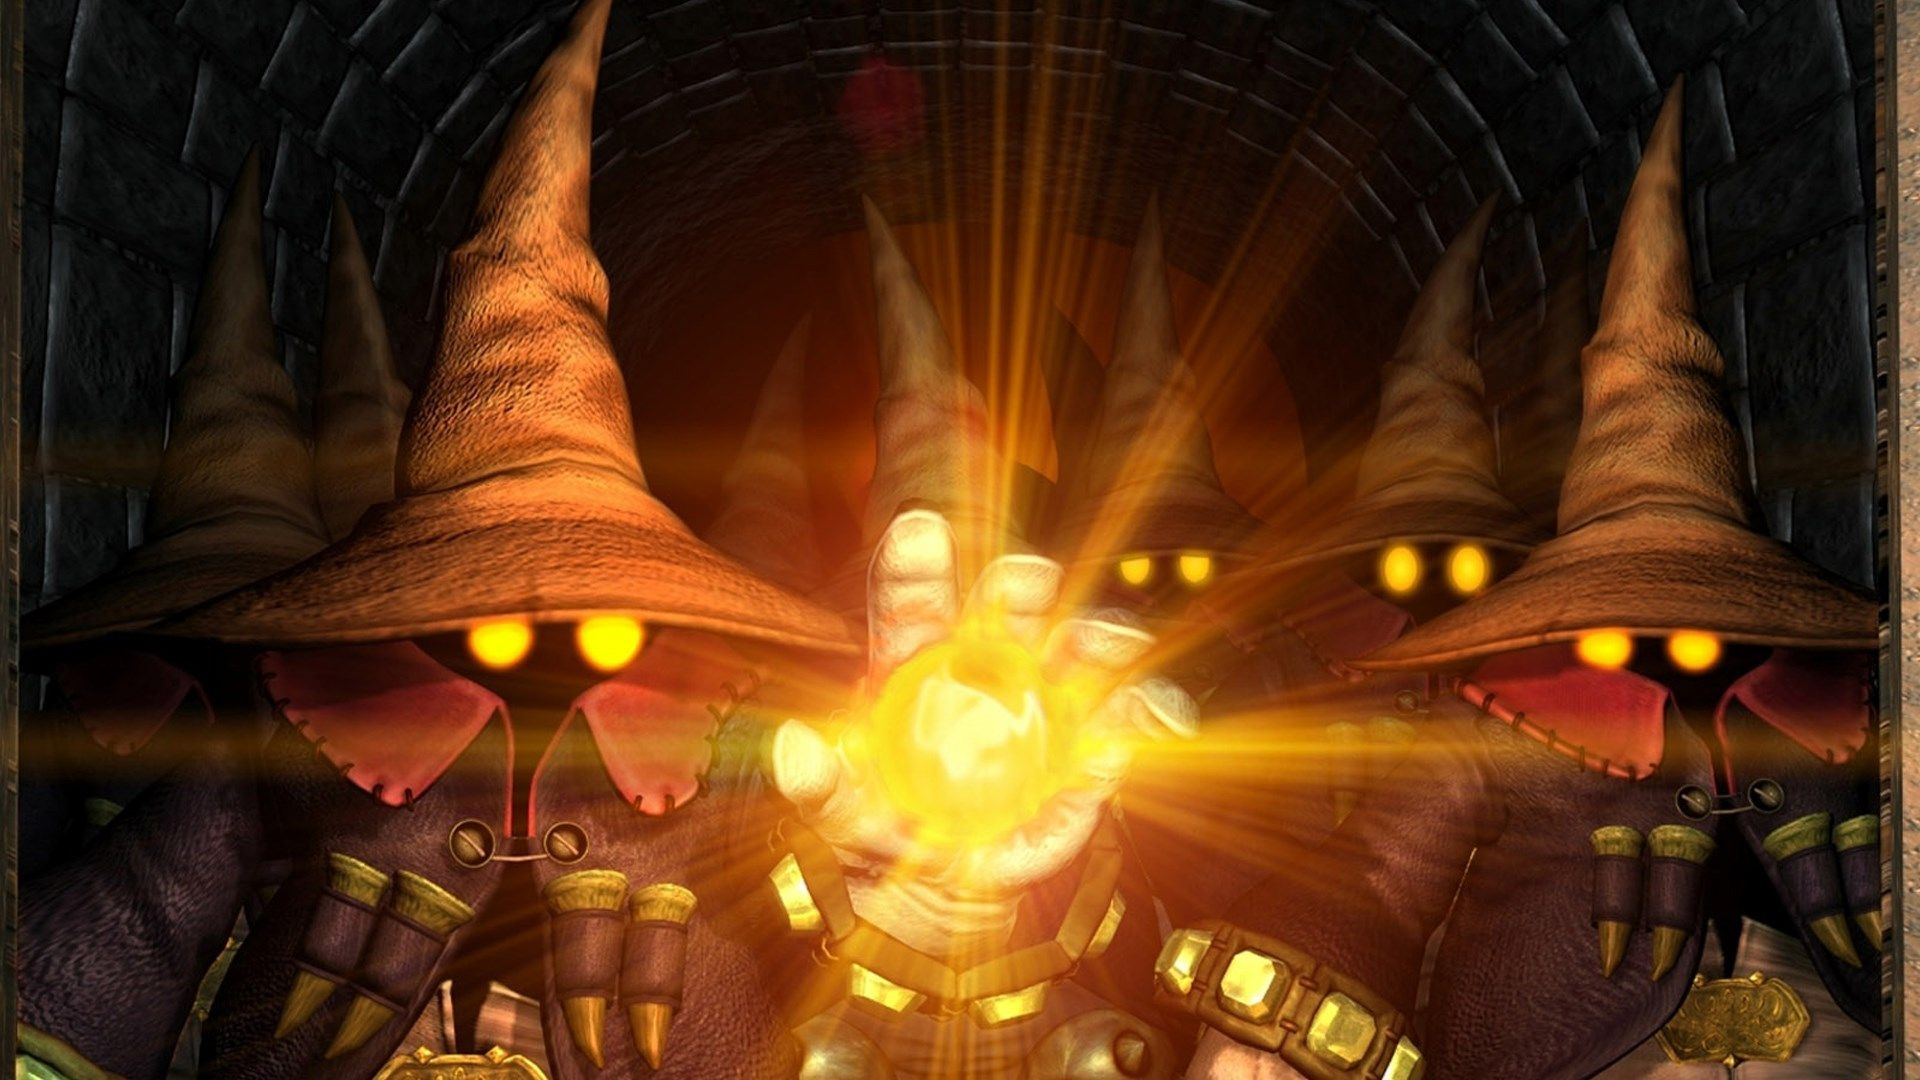 Wallpaper Images Final Fantasy Ix Eadric Ross 1920x1080 Ololoshenka Final Fantasy Ix Final Fantasy Final Fantasy Characters